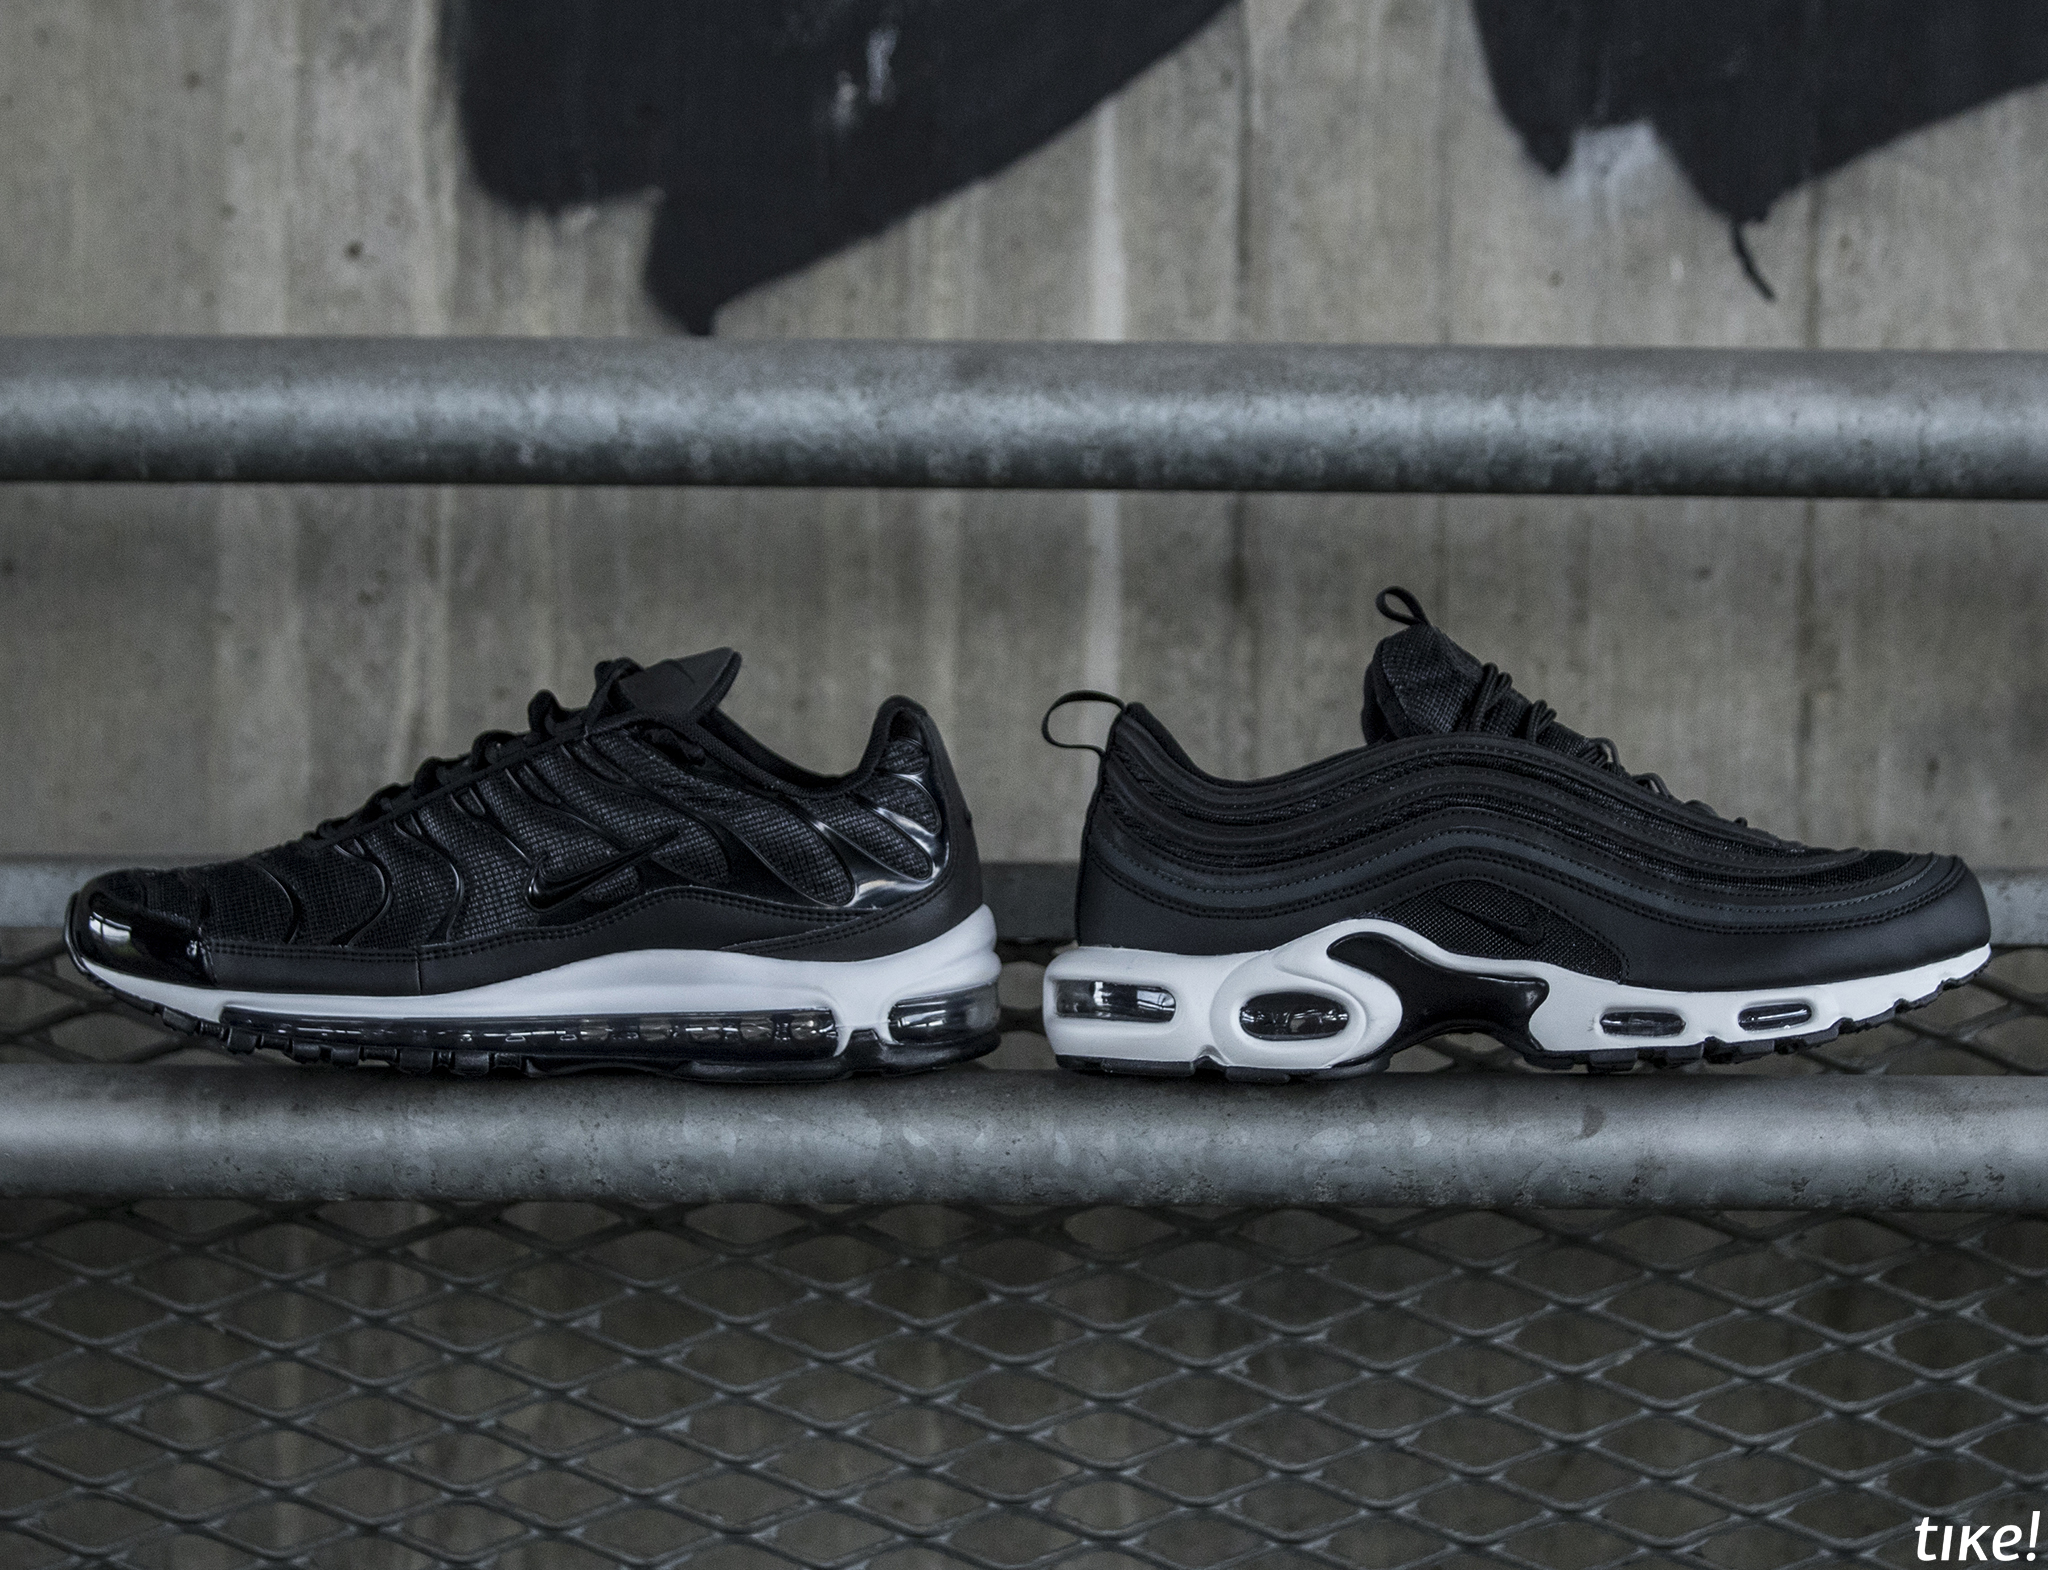 Nike LAB Air Max Hybrid Pack